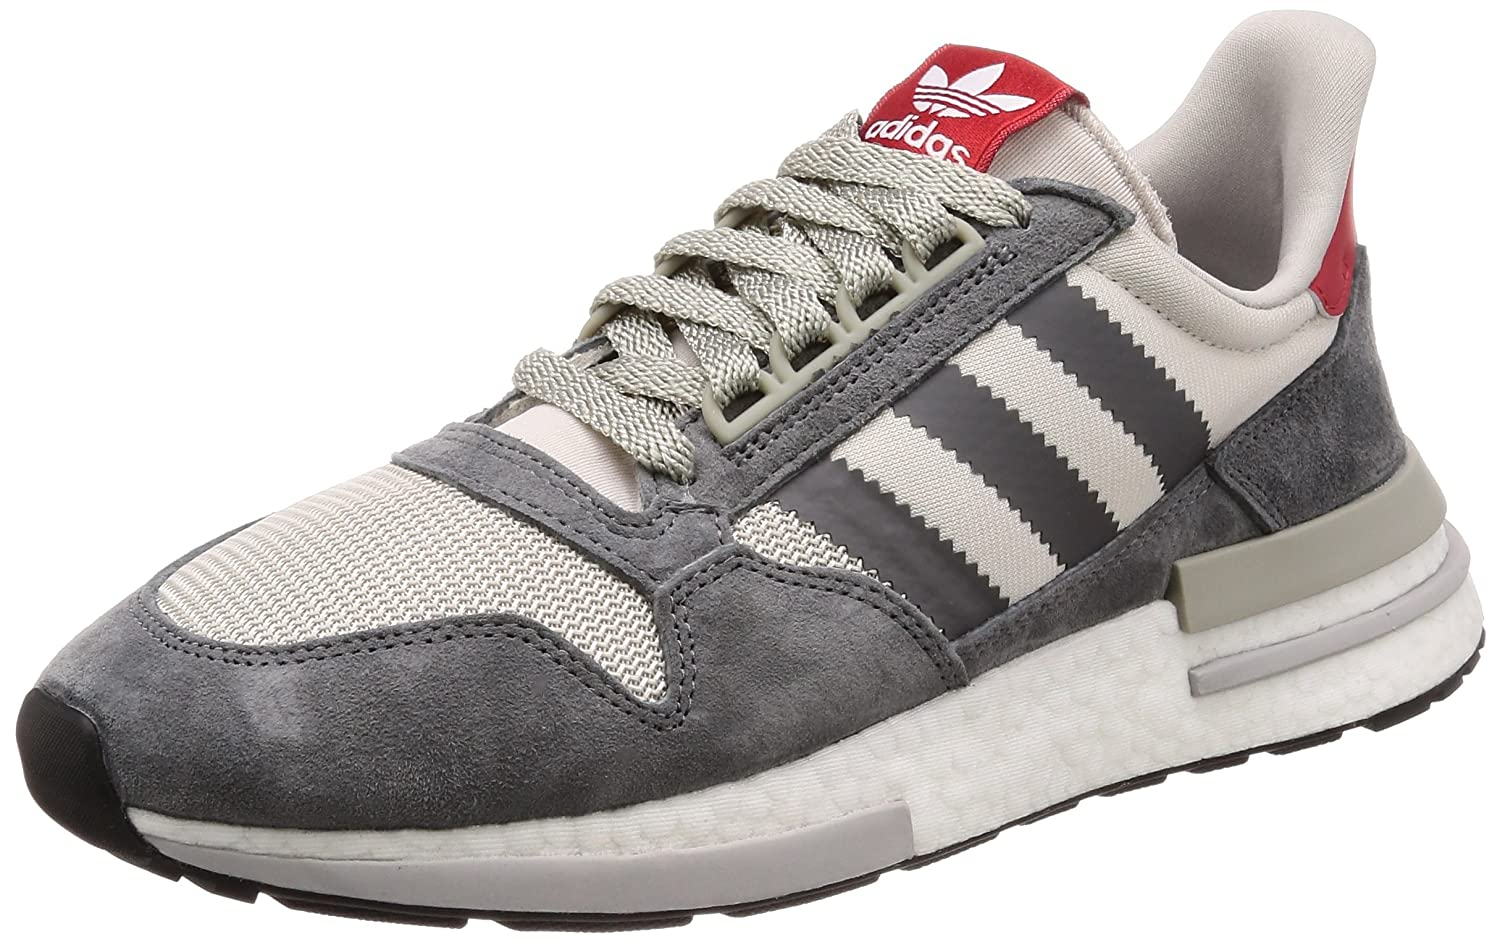 Adidas ZX 500 RM, Chaussures de Fitness Homme